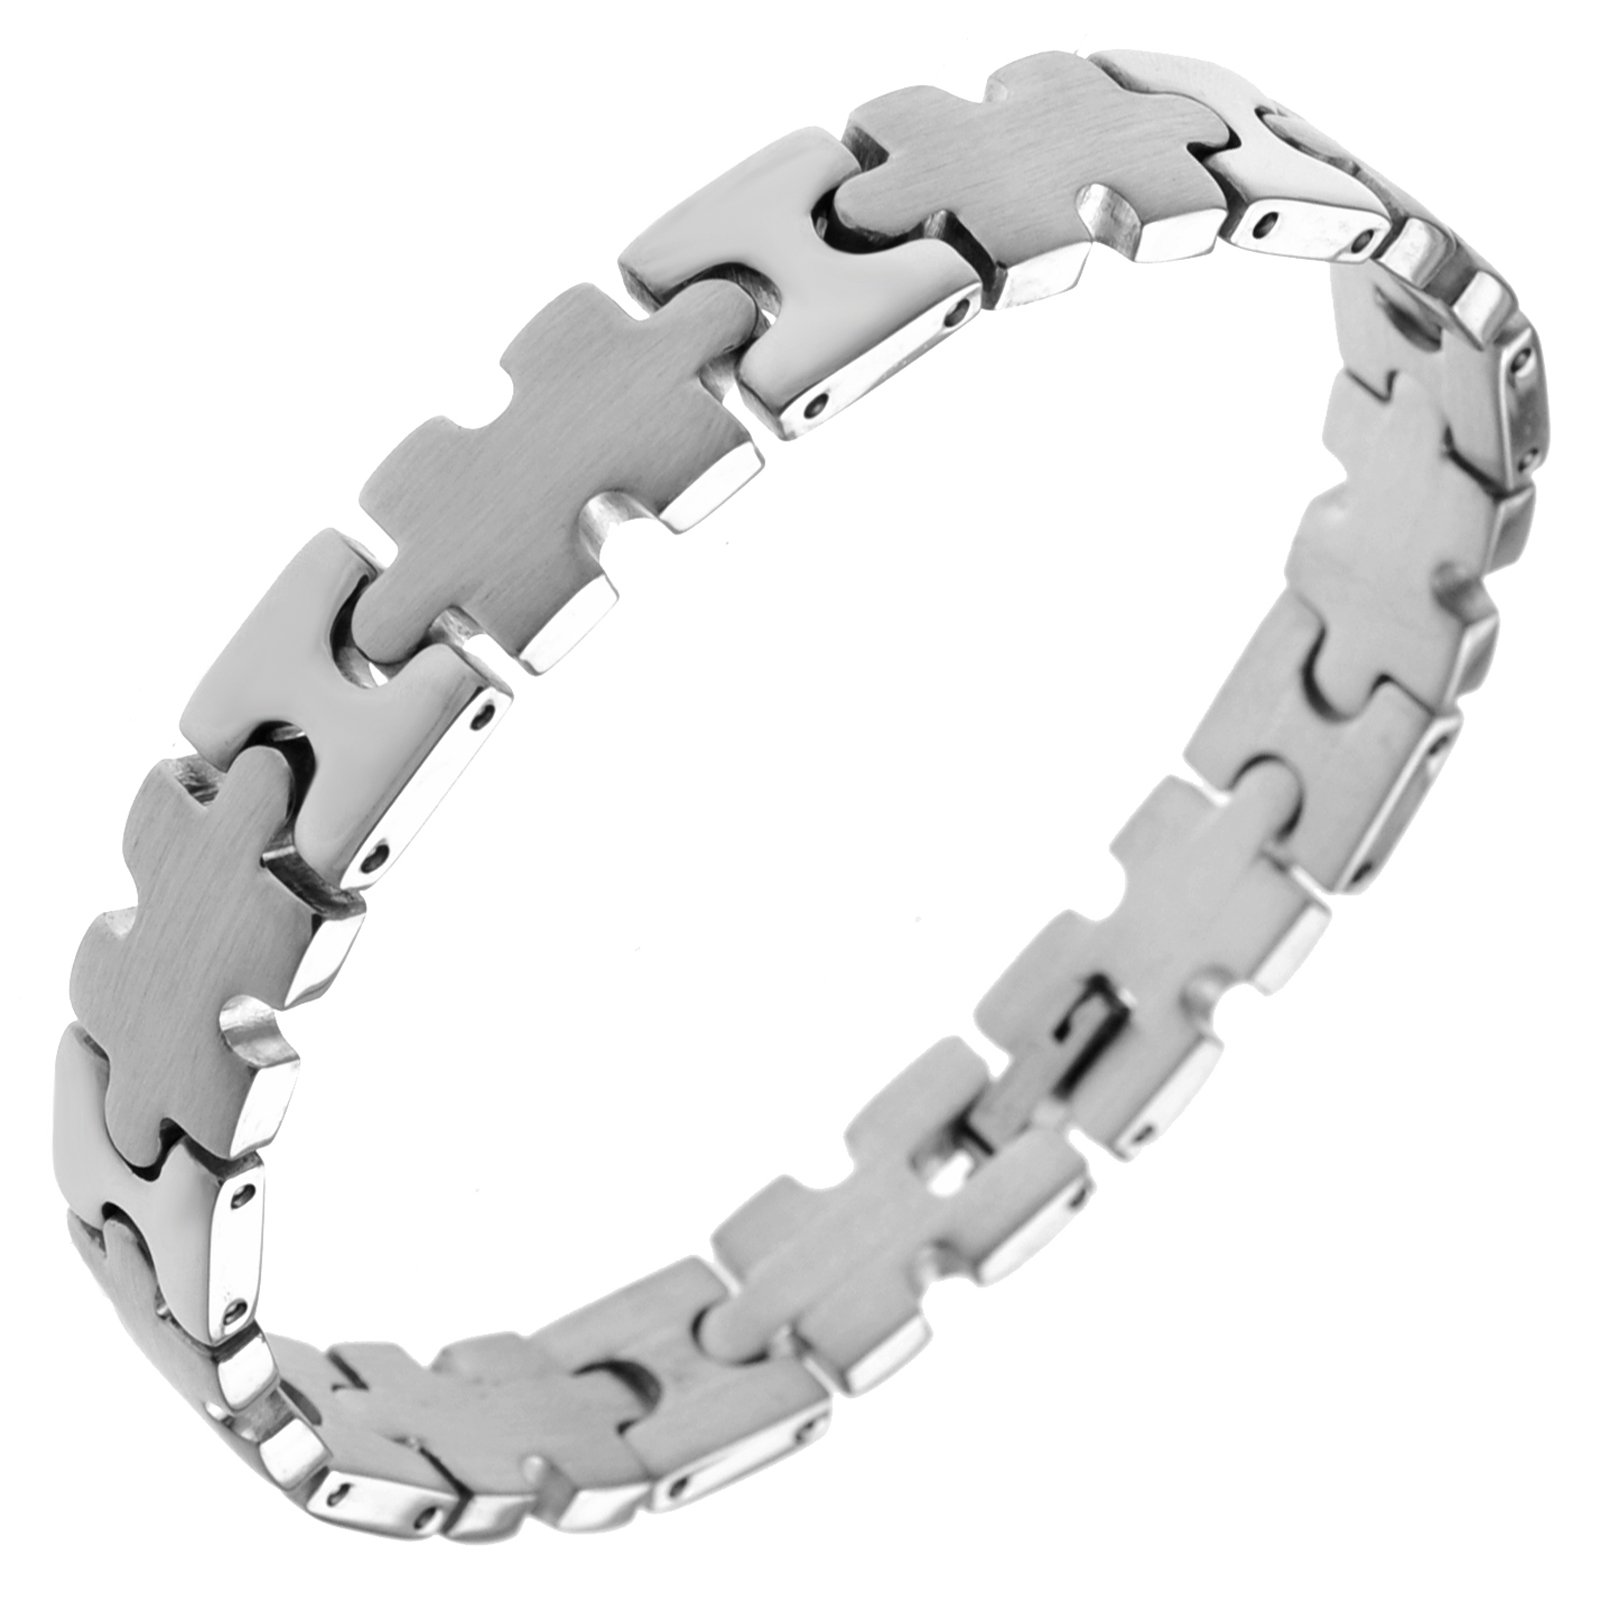 Stainless Steel Puzzle Bracelet (9'' Long)